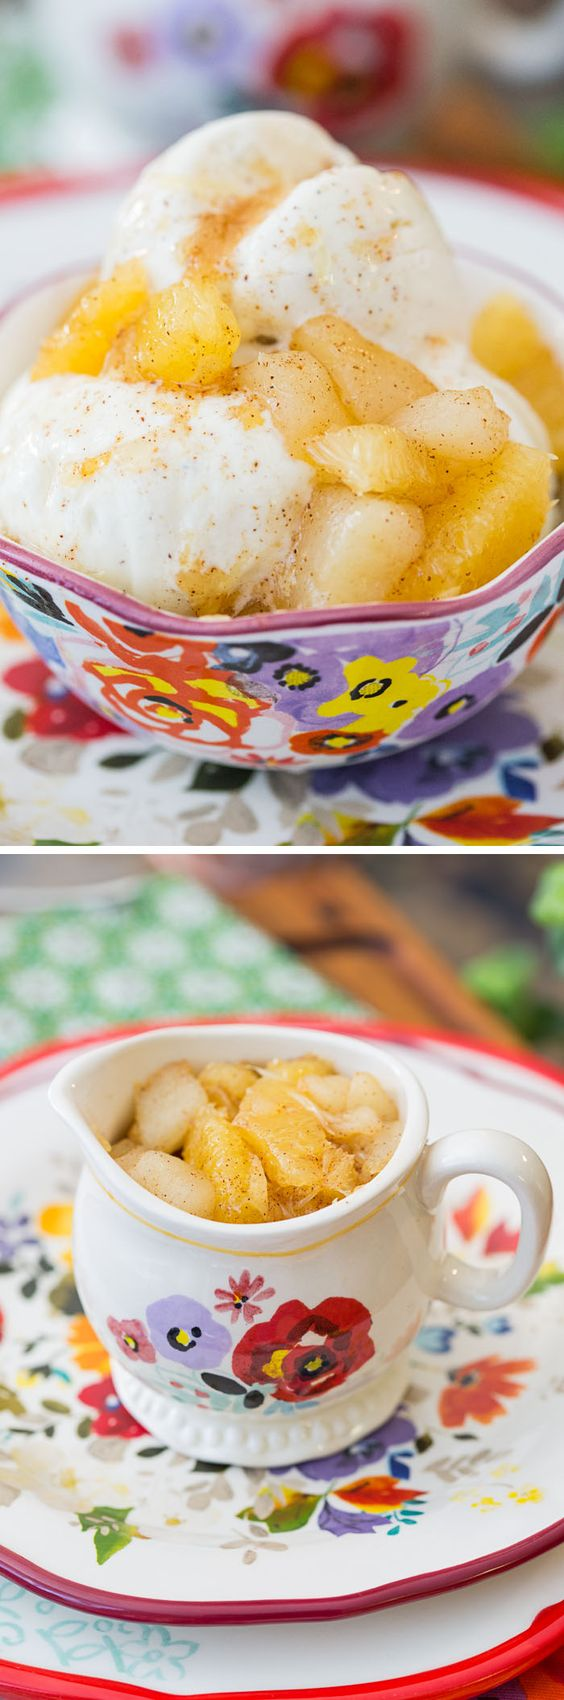 An easy recipe for Spiced Orange and Pear Compote. Delicious over vanilla ice cream, angel food cake, or crackers and brie. Perfect for a cheese plate!